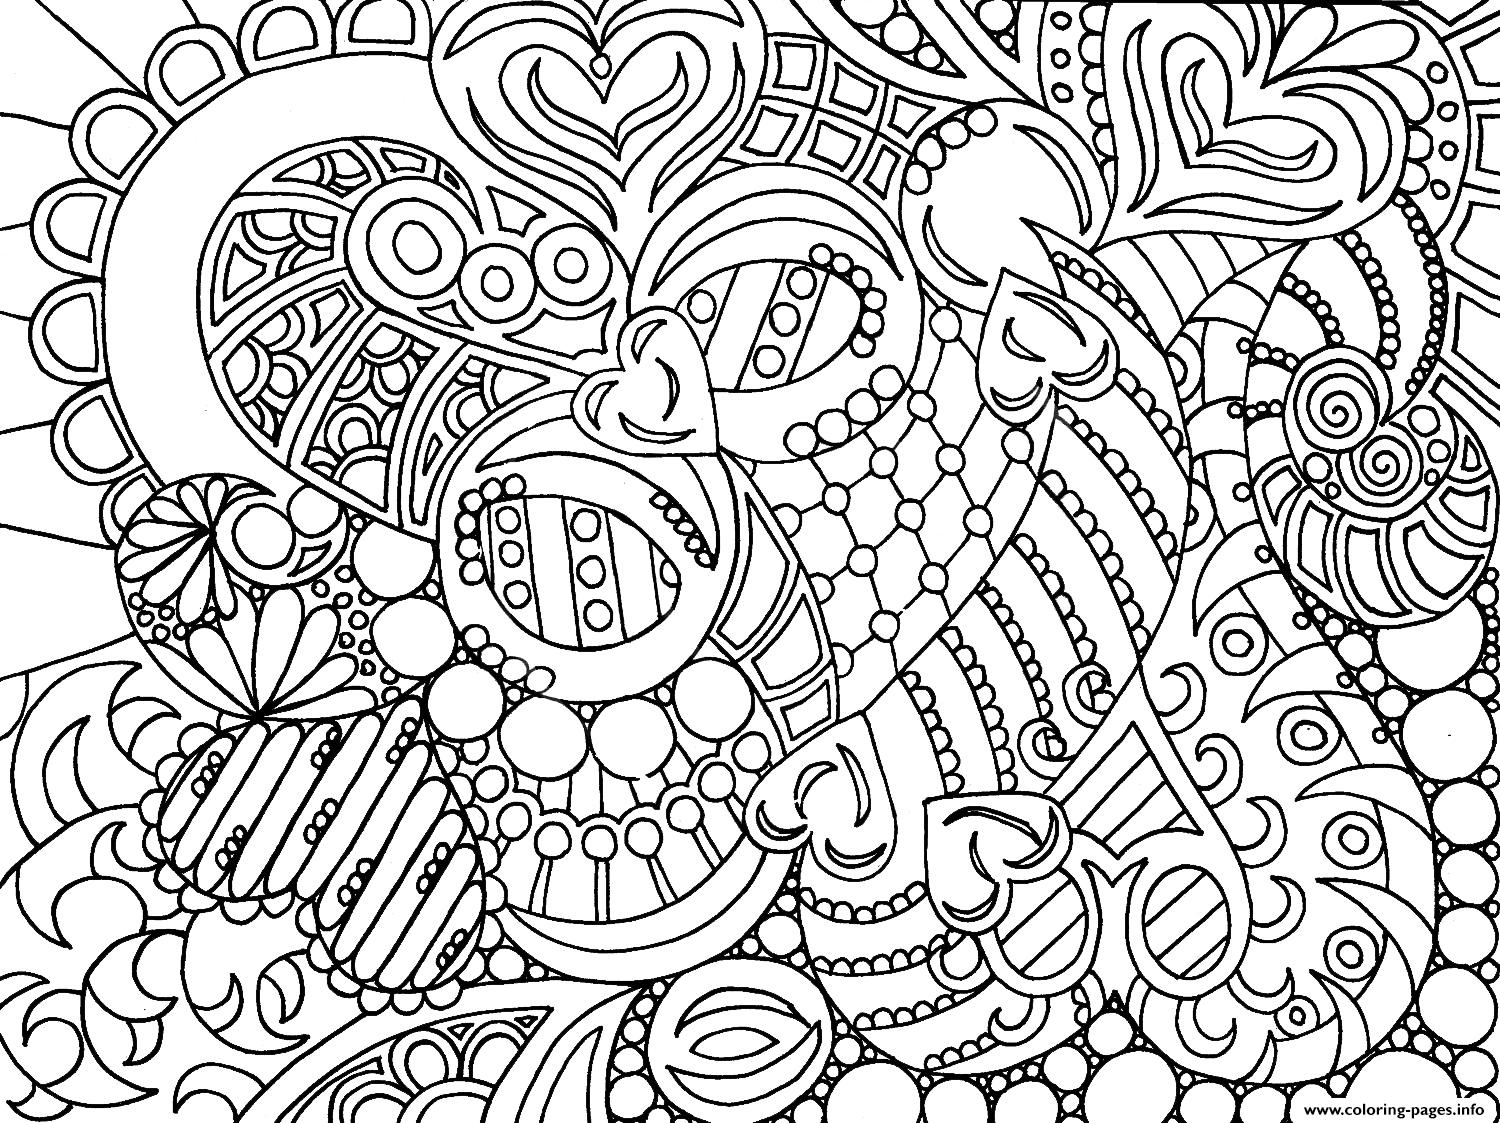 Very Cool Colouring For Adult Coloring Pages Printable | coloring pages for adults cool